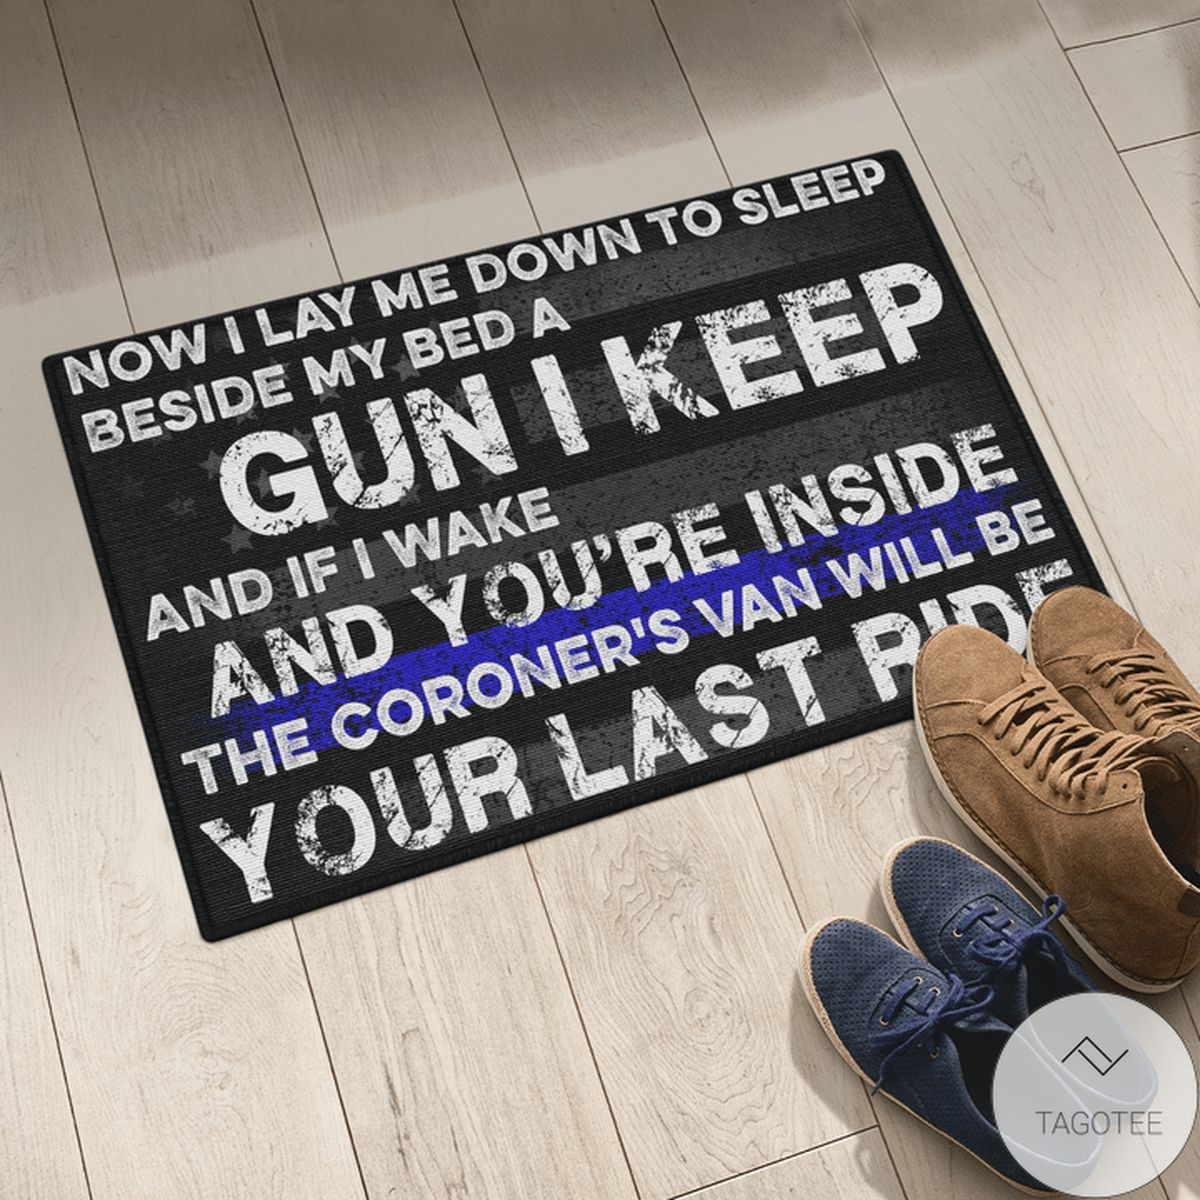 Present Now I Lay Me Down To Sleep Beside My Bed A Gun I Keep And If I Wake And You're Inside The Coroner's Van Will Be Your Last Ride Shirt